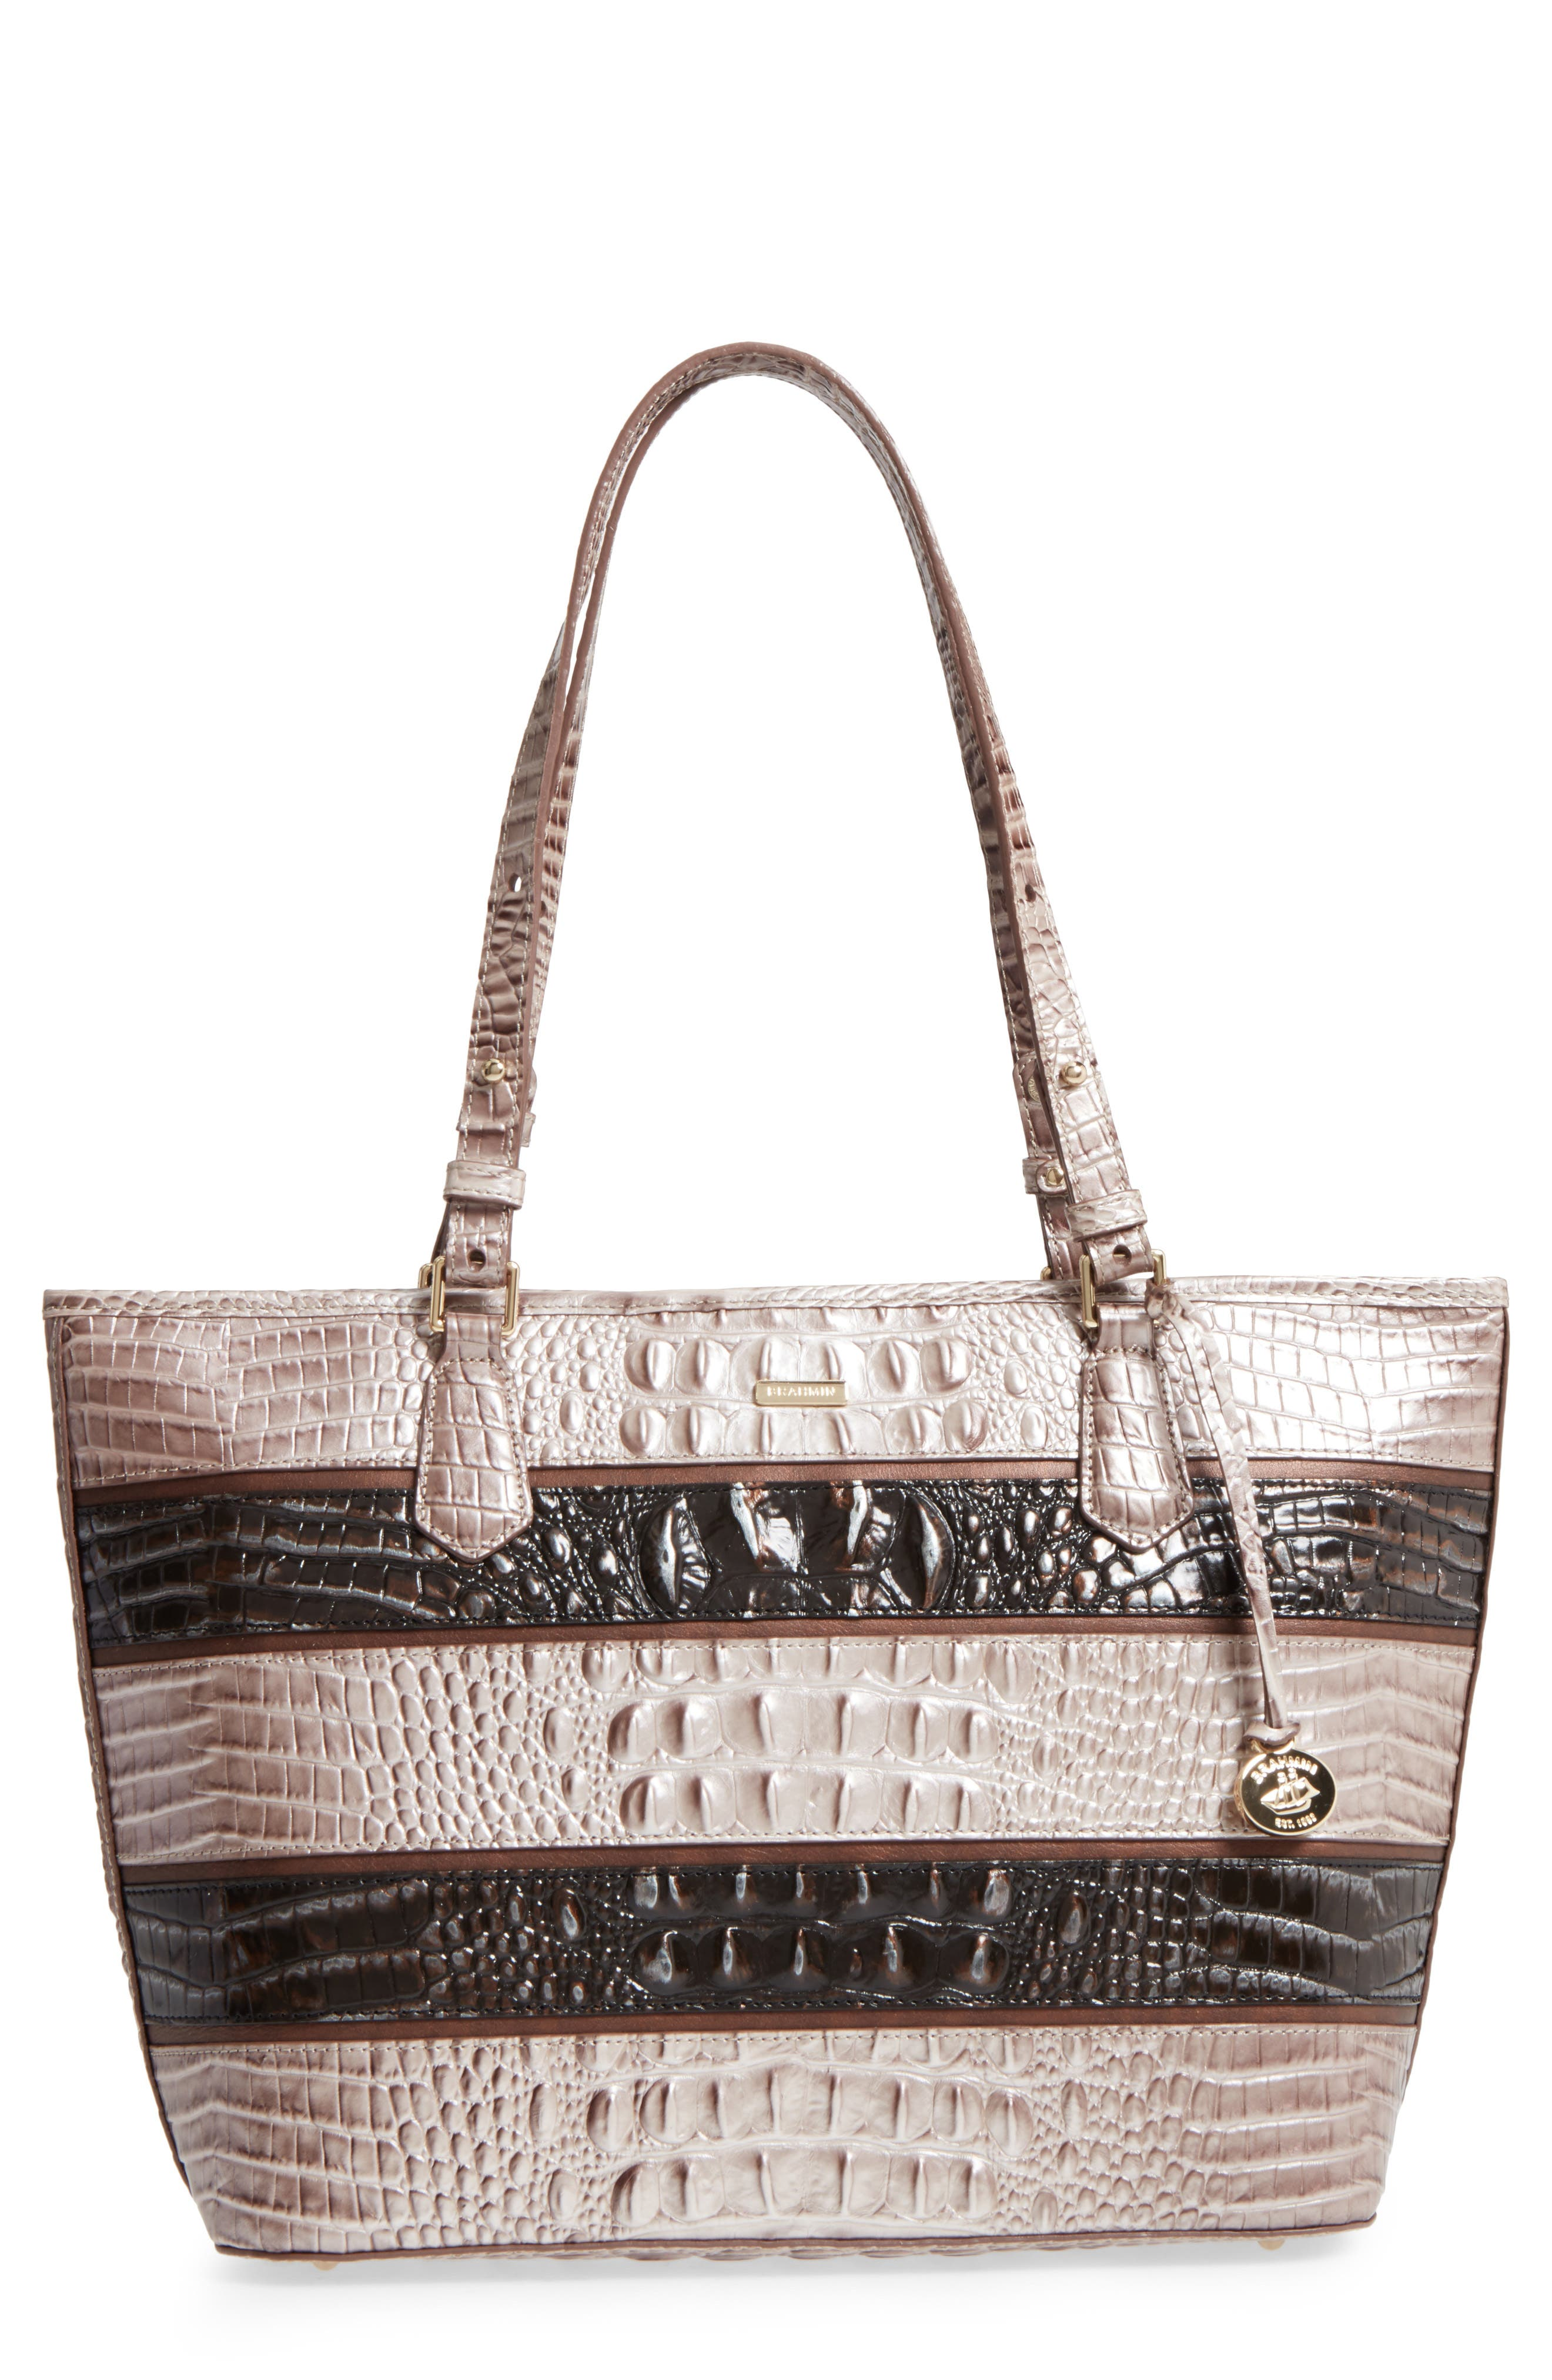 Seine - Medium Asher Leather Tote,                             Main thumbnail 1, color,                             210